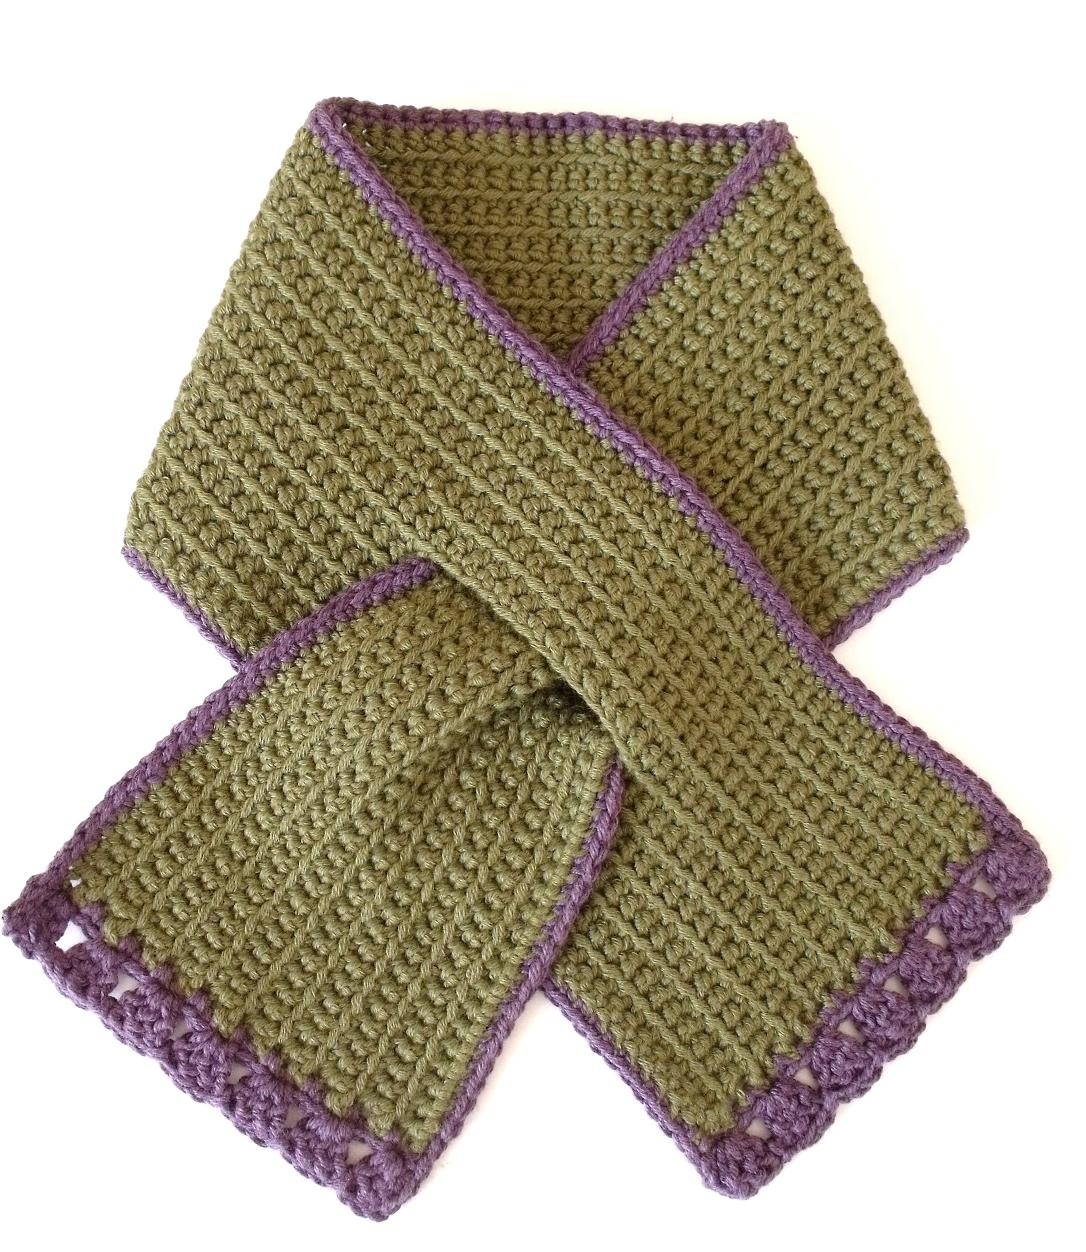 Crochet Pattern Keyhole Scarf : KEYHOLE CROCHET FREE PATTERN SCARF ? CROCHET PATTERNS